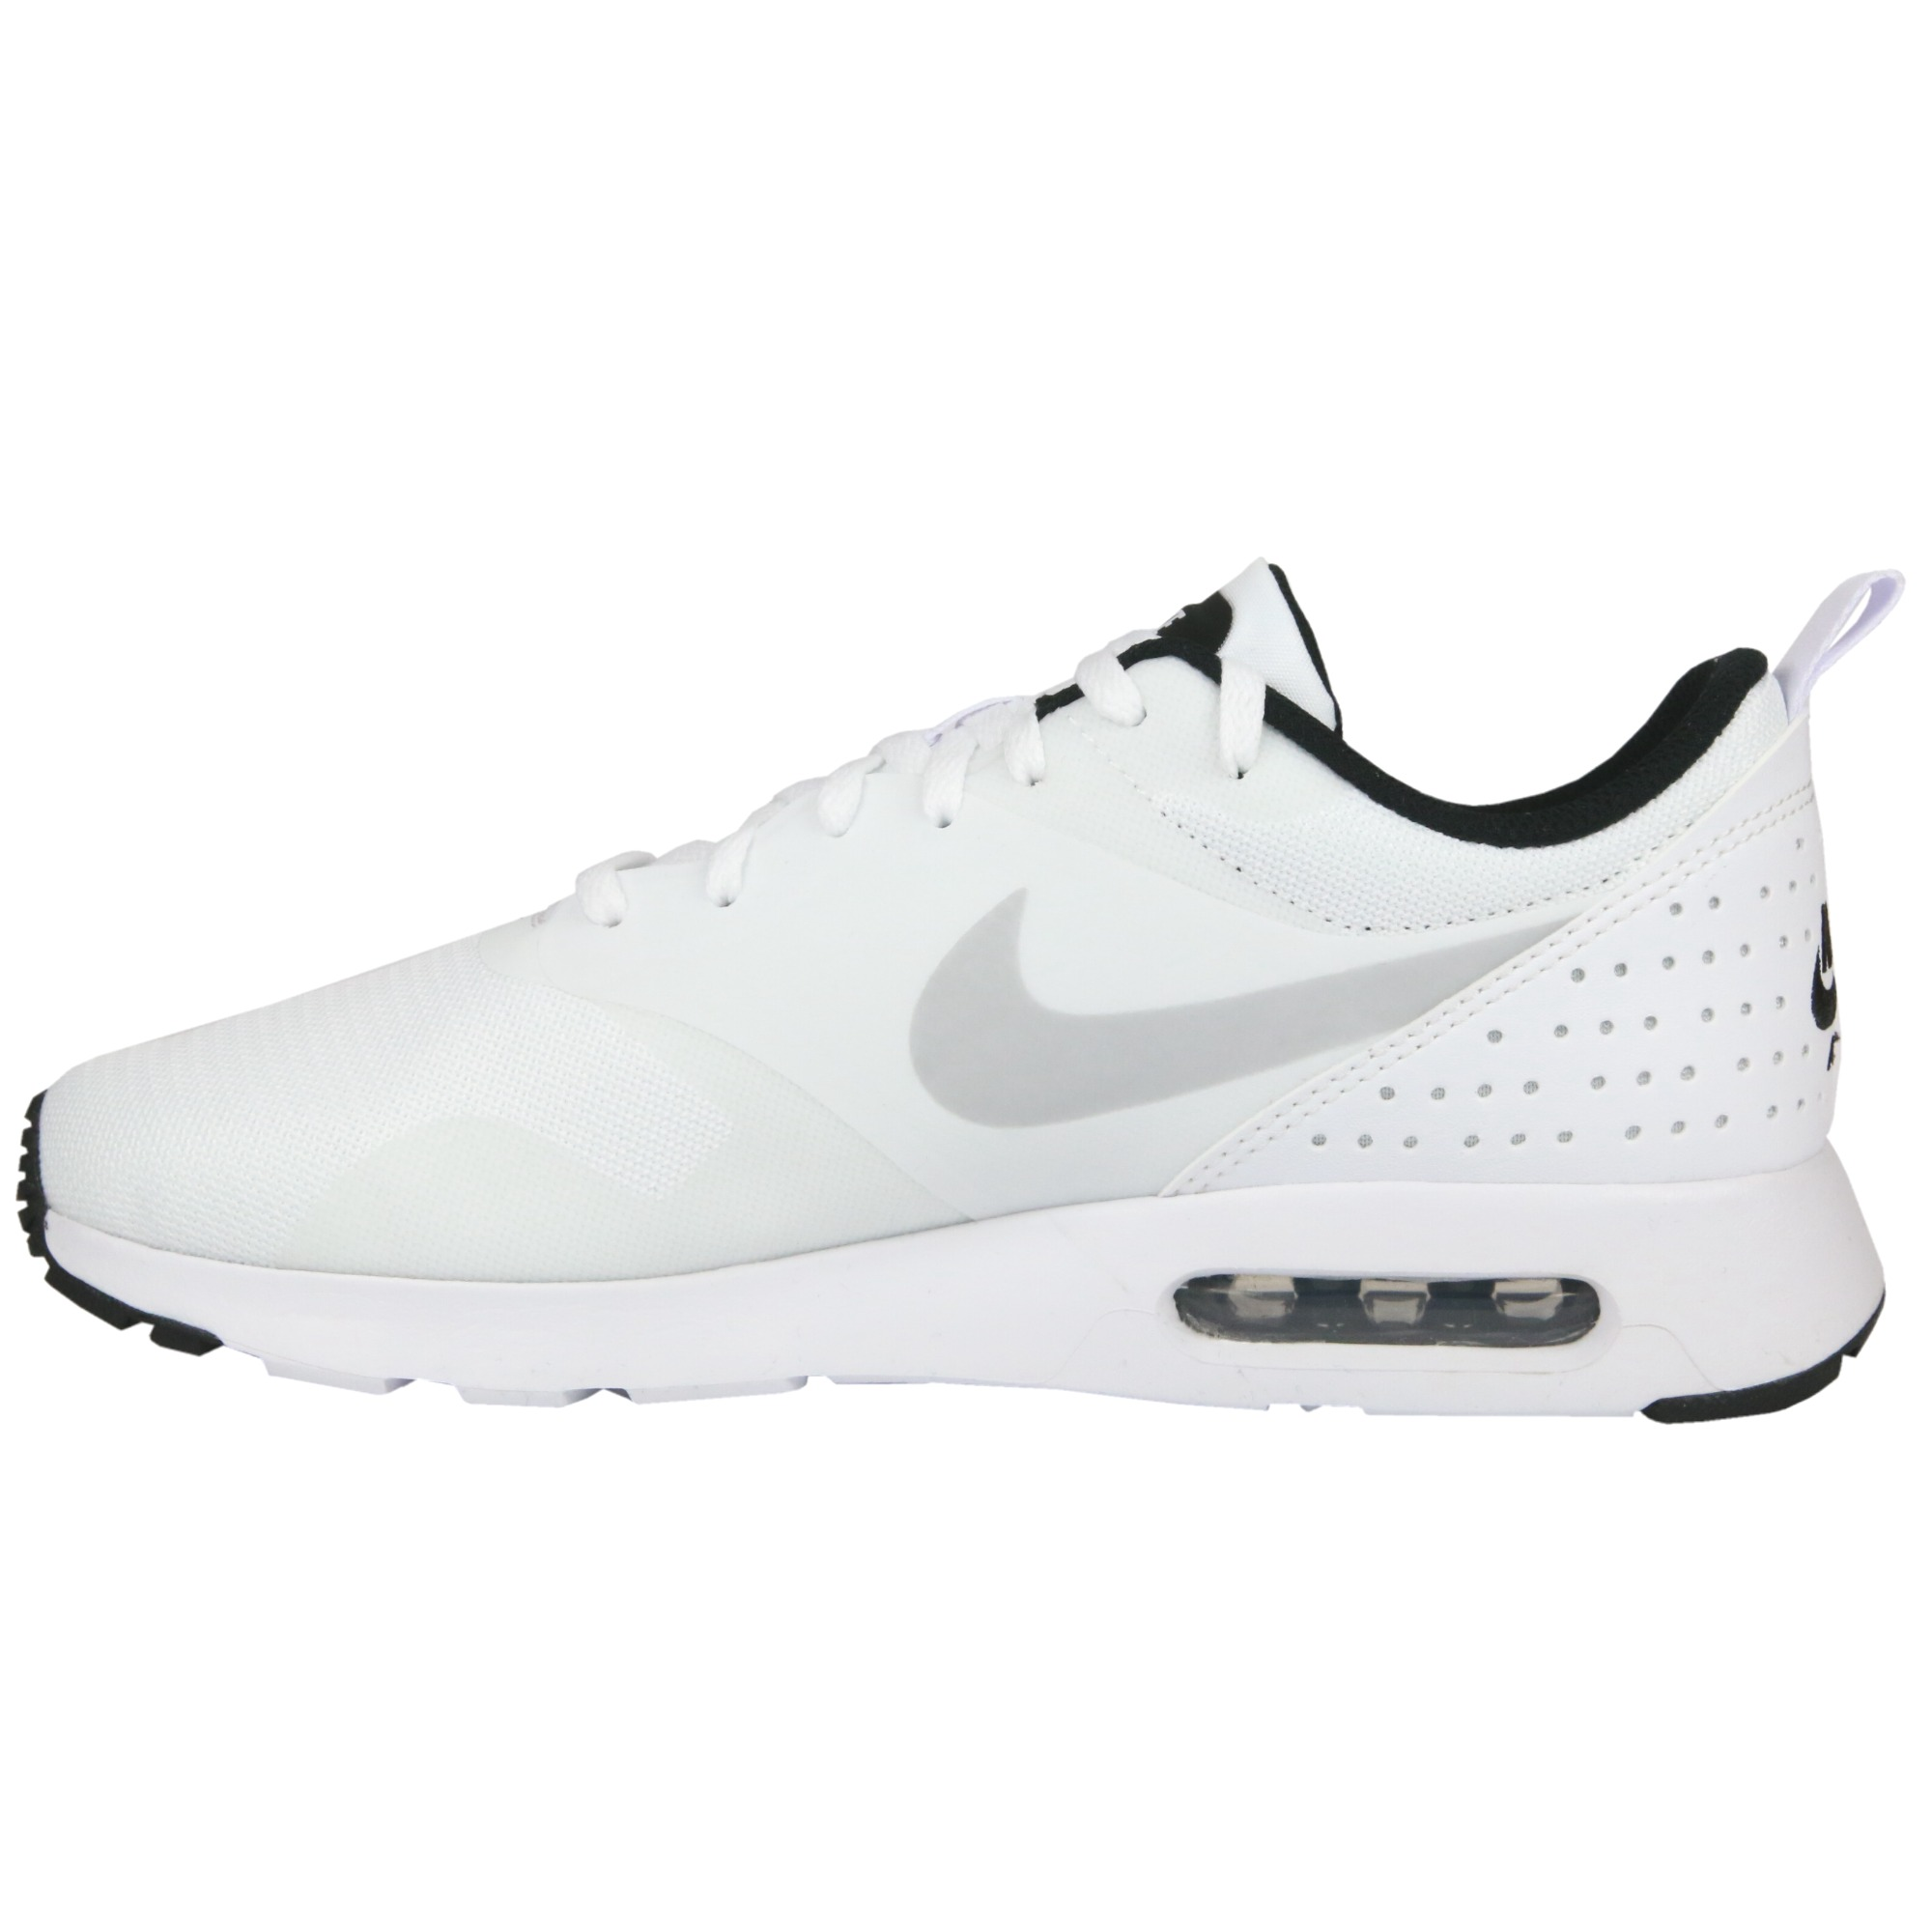 Nike-Air-Max-Tavas-Essential-Shoes-Trainers-Training-